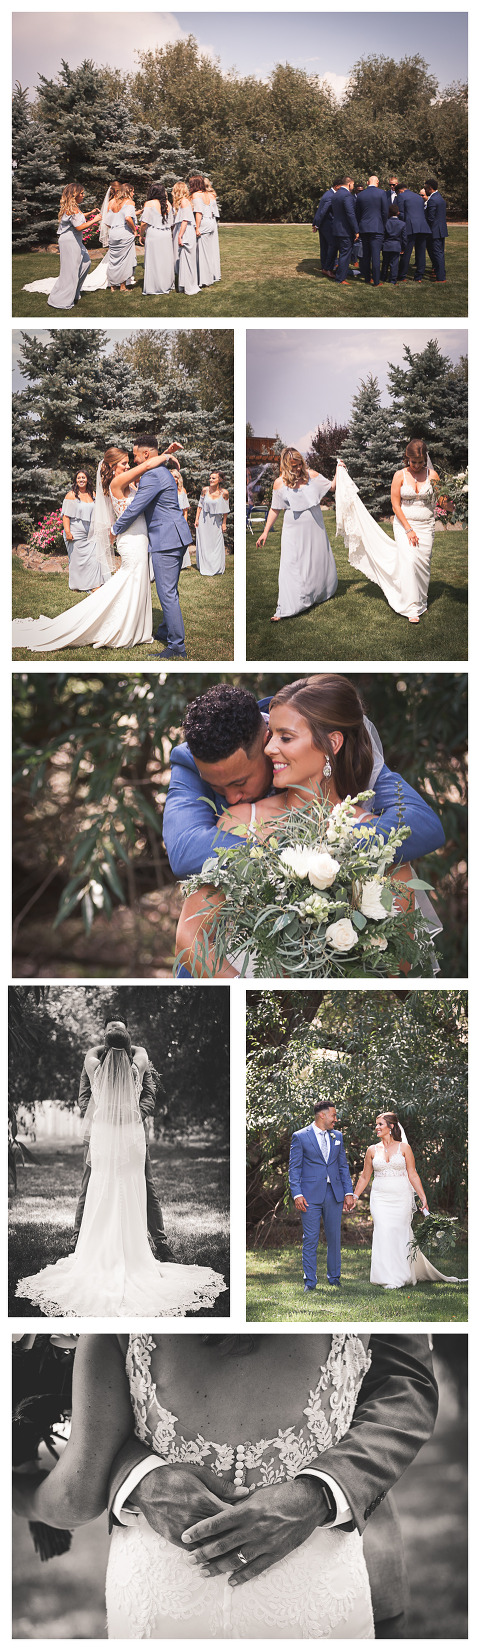 lifestyle wedding portraits, Jerome & Michelle married at McInosh barn in Ellensburg photographed by Hailey Haberman Ellensburg Wedding Photographer